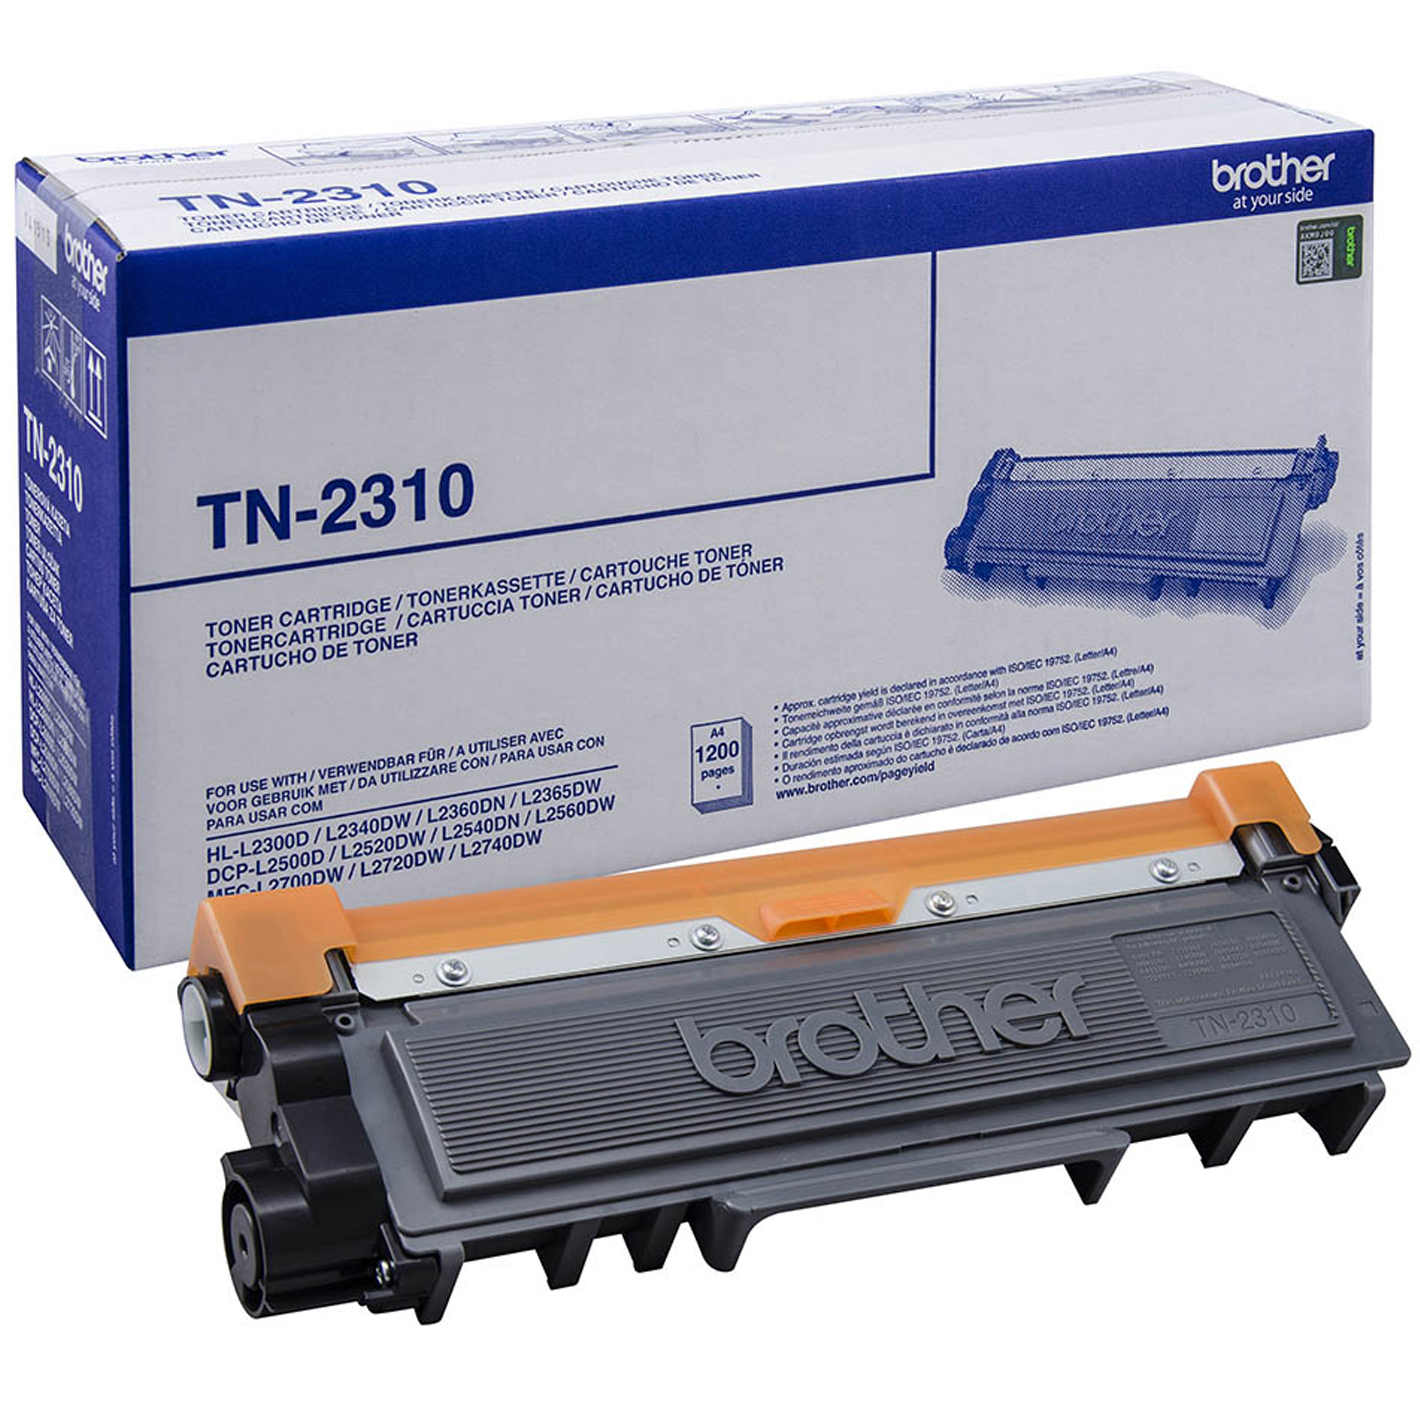 Tn2310 brother Black Standard Yield Toner 1.2k - AD01